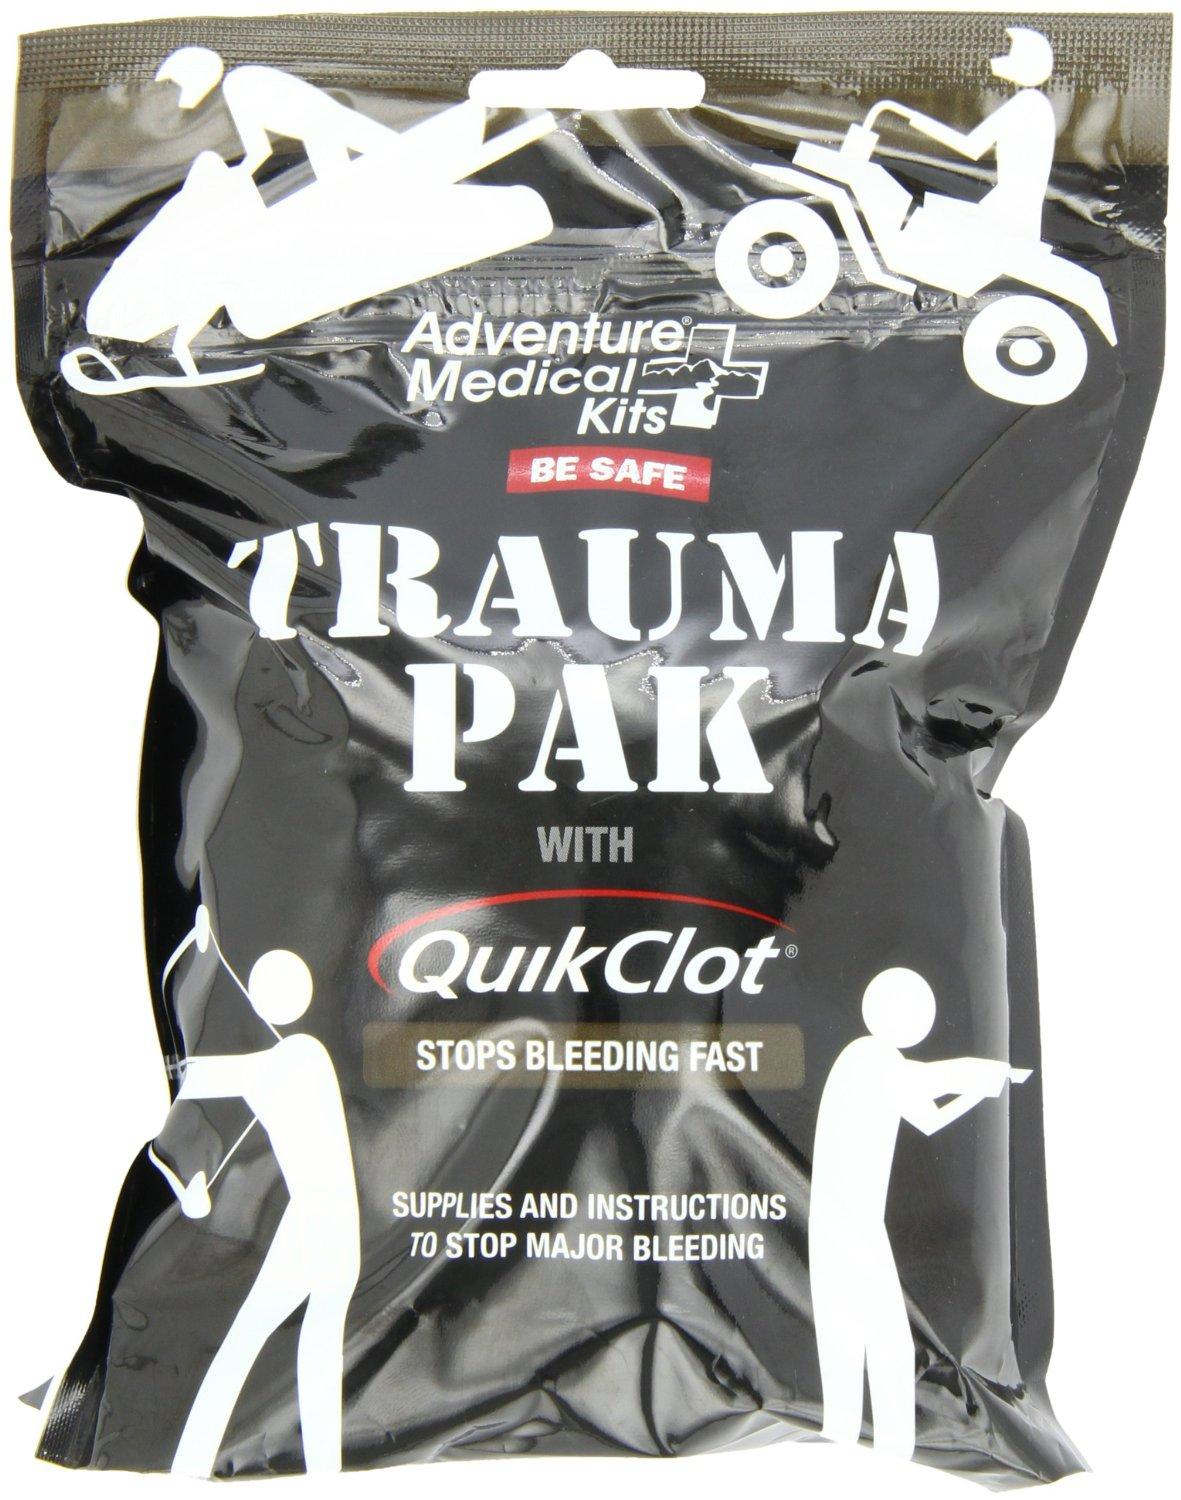 $14.01 Adventure Medical Kits Trauma Pack with QuikClot